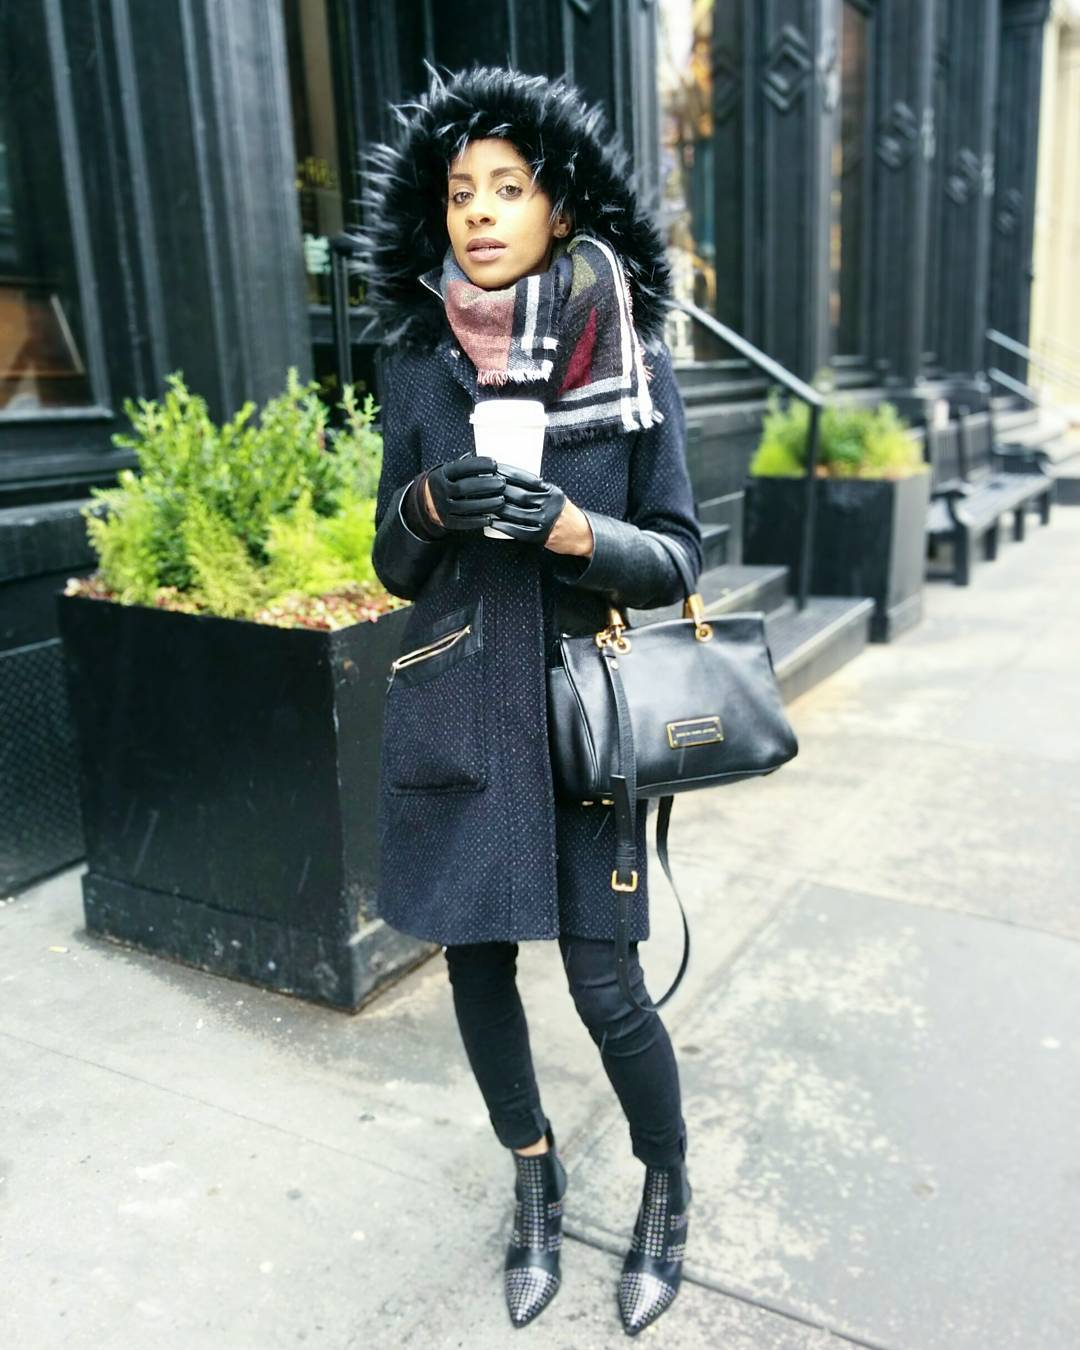 Coat: Via Spiga / Jeans: Hudson Jeans / Boots: Top Shop / Scarf: ASOS / Bag: Mark By Mark Jacobs